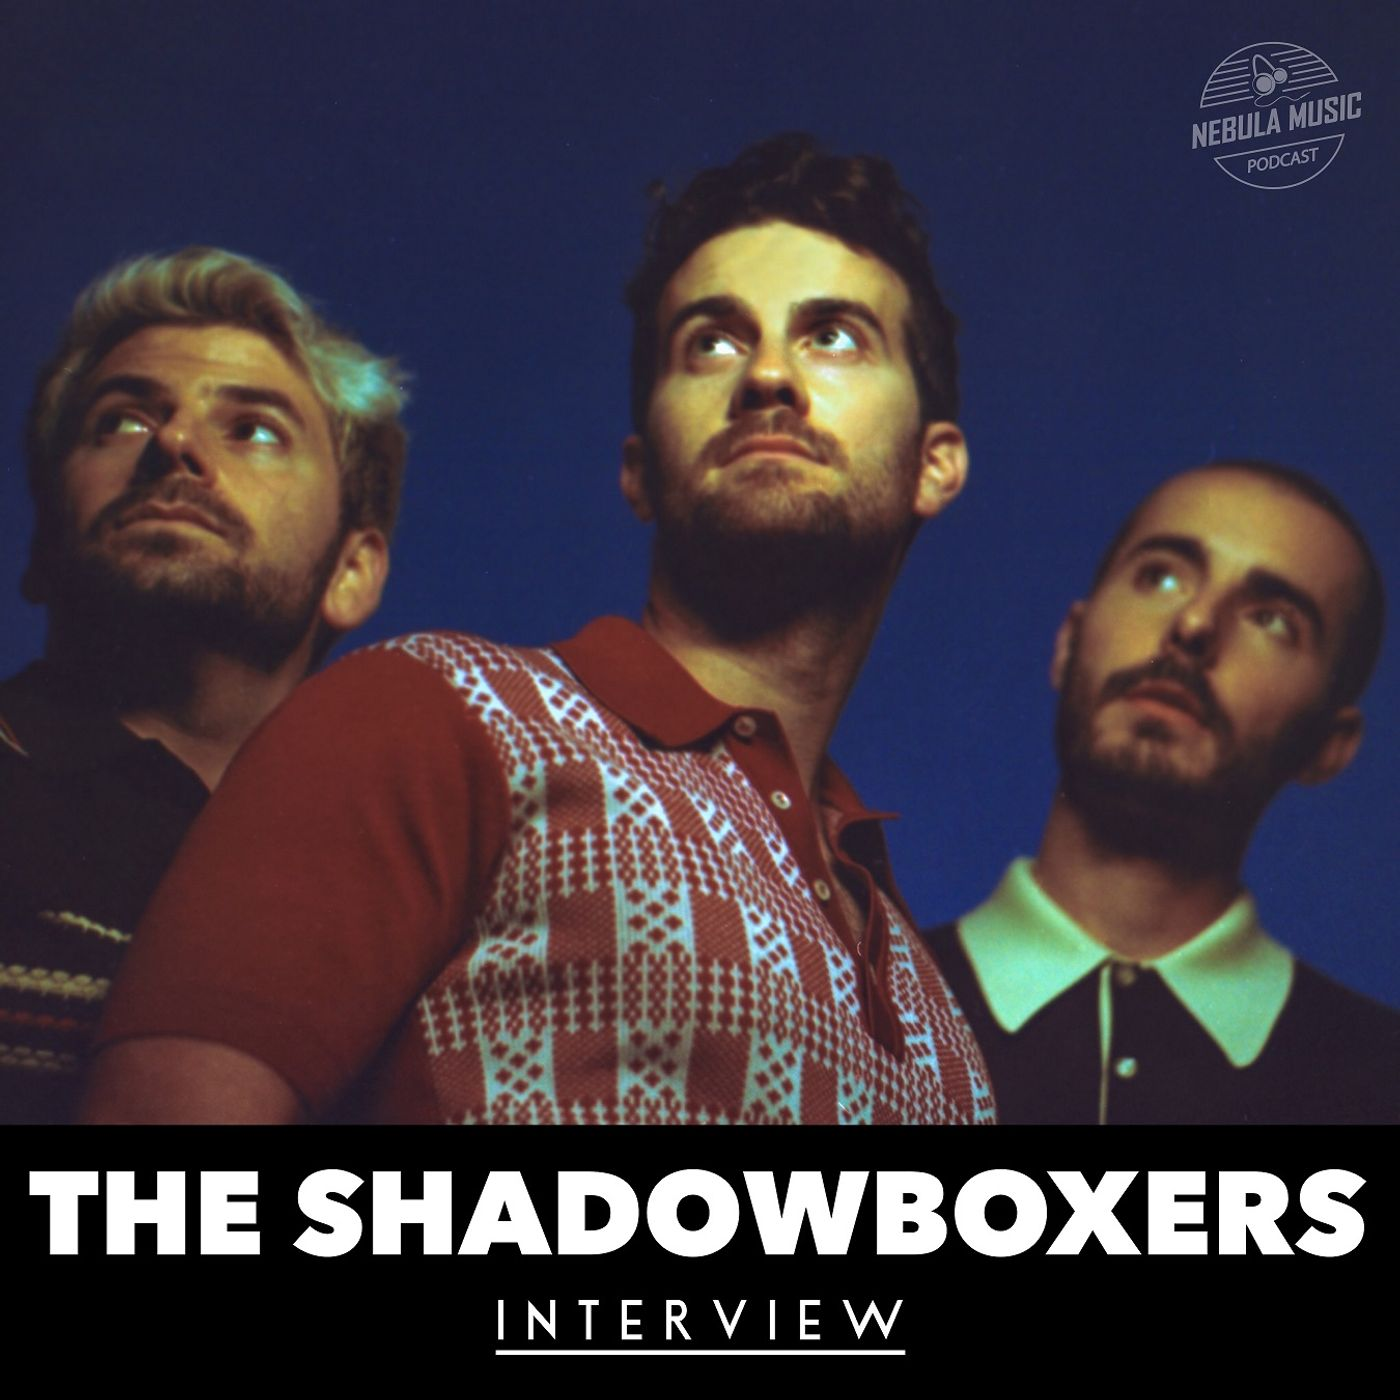 The Shadowboxers Interview